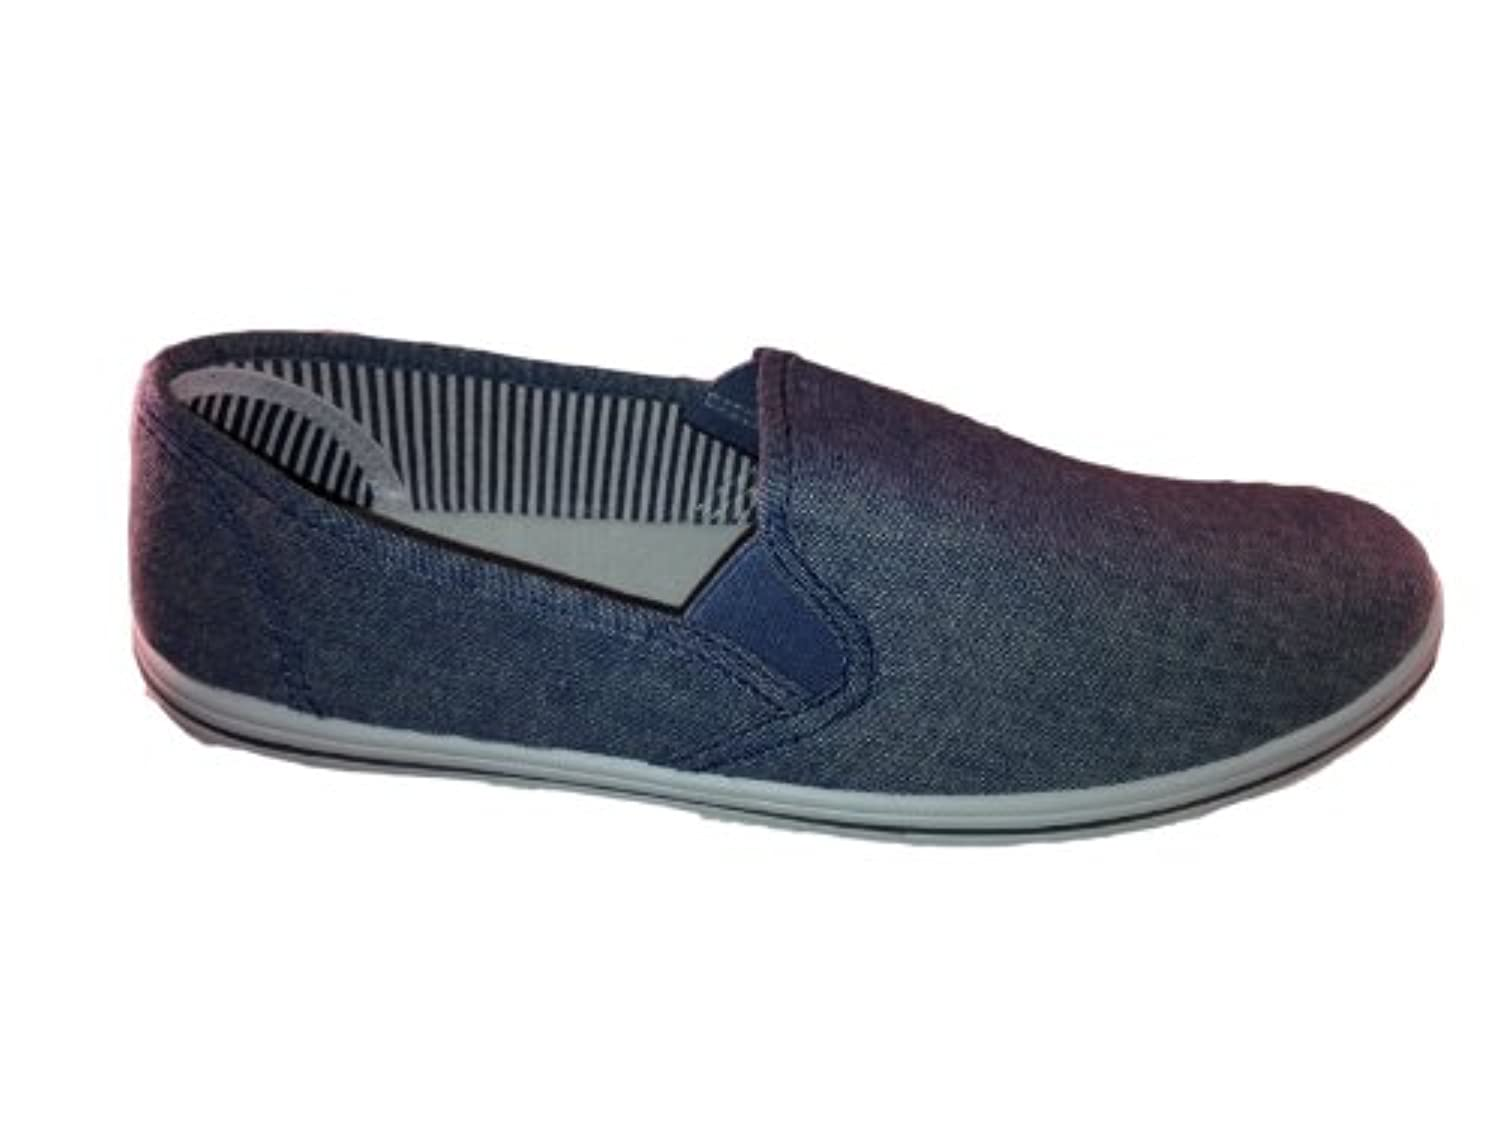 MENS PLIMSOLES SLIP ON PUMPS TRAINERS PLIMSOLLS ESPADRILLES SHOES CANVAS BOYS SIZE ADULT UK 7